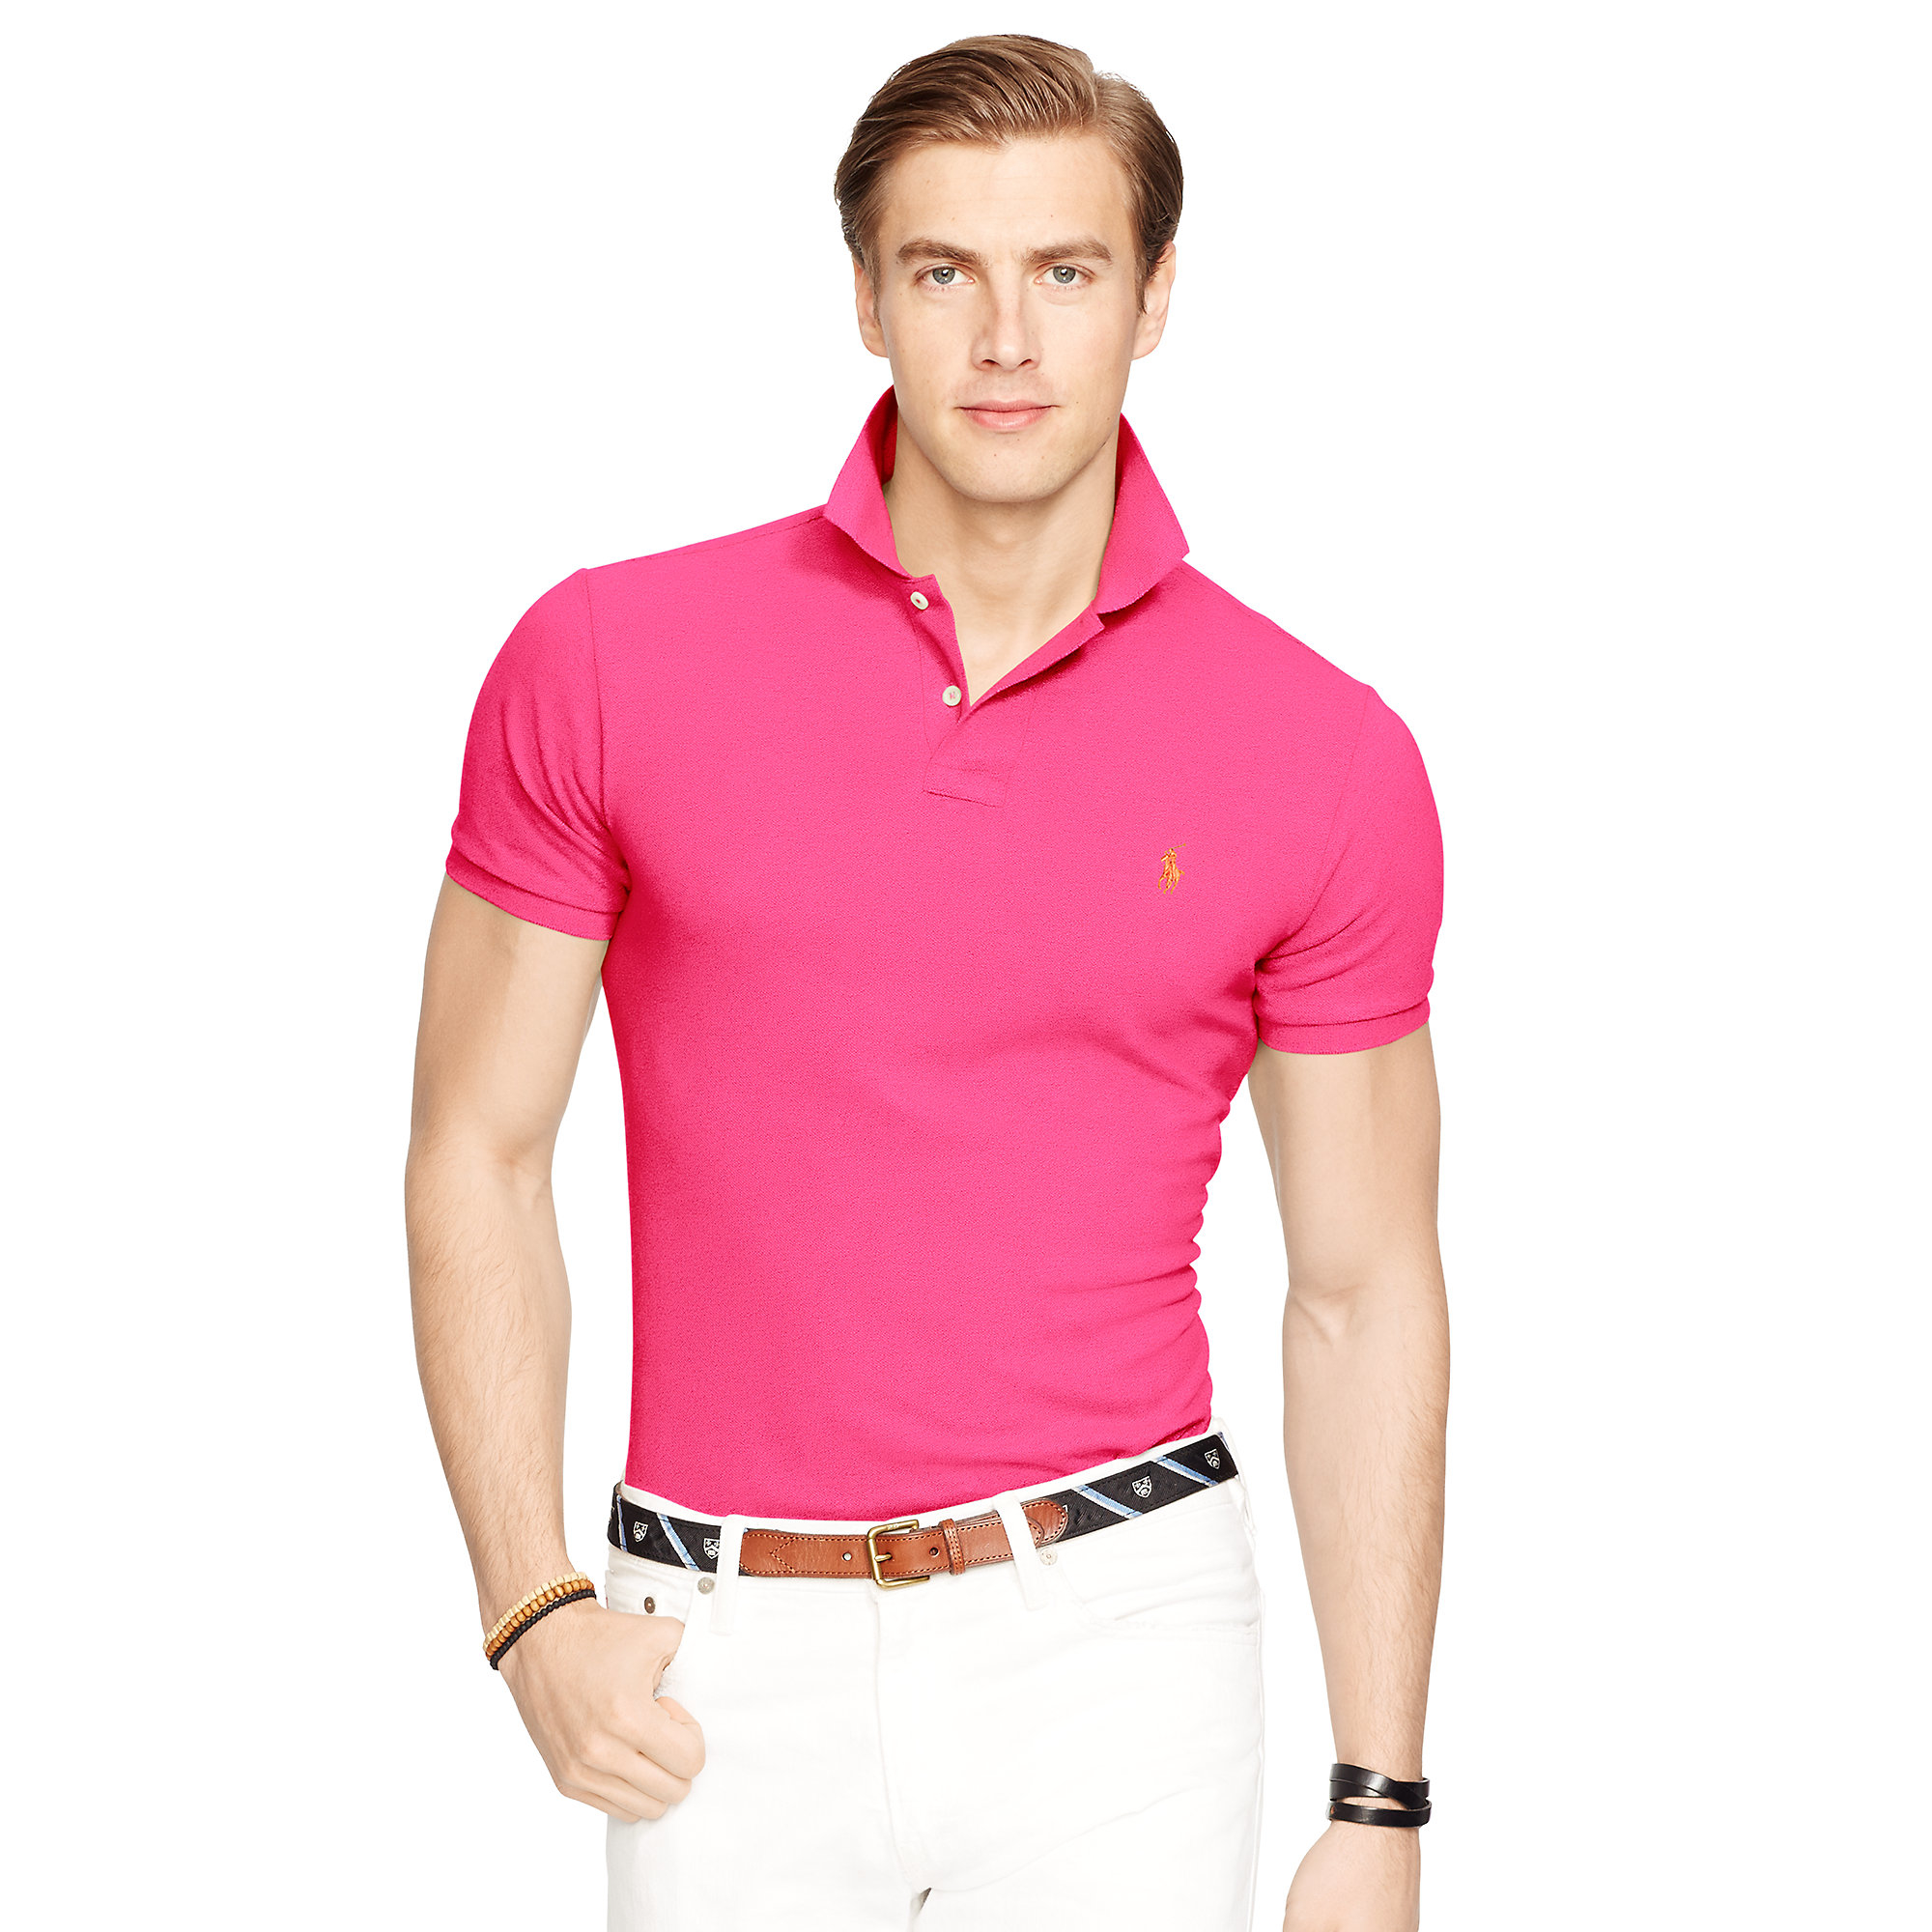 Polo ralph lauren slim fit mesh polo shirt in pink for men for Mens slim fit polo shirt